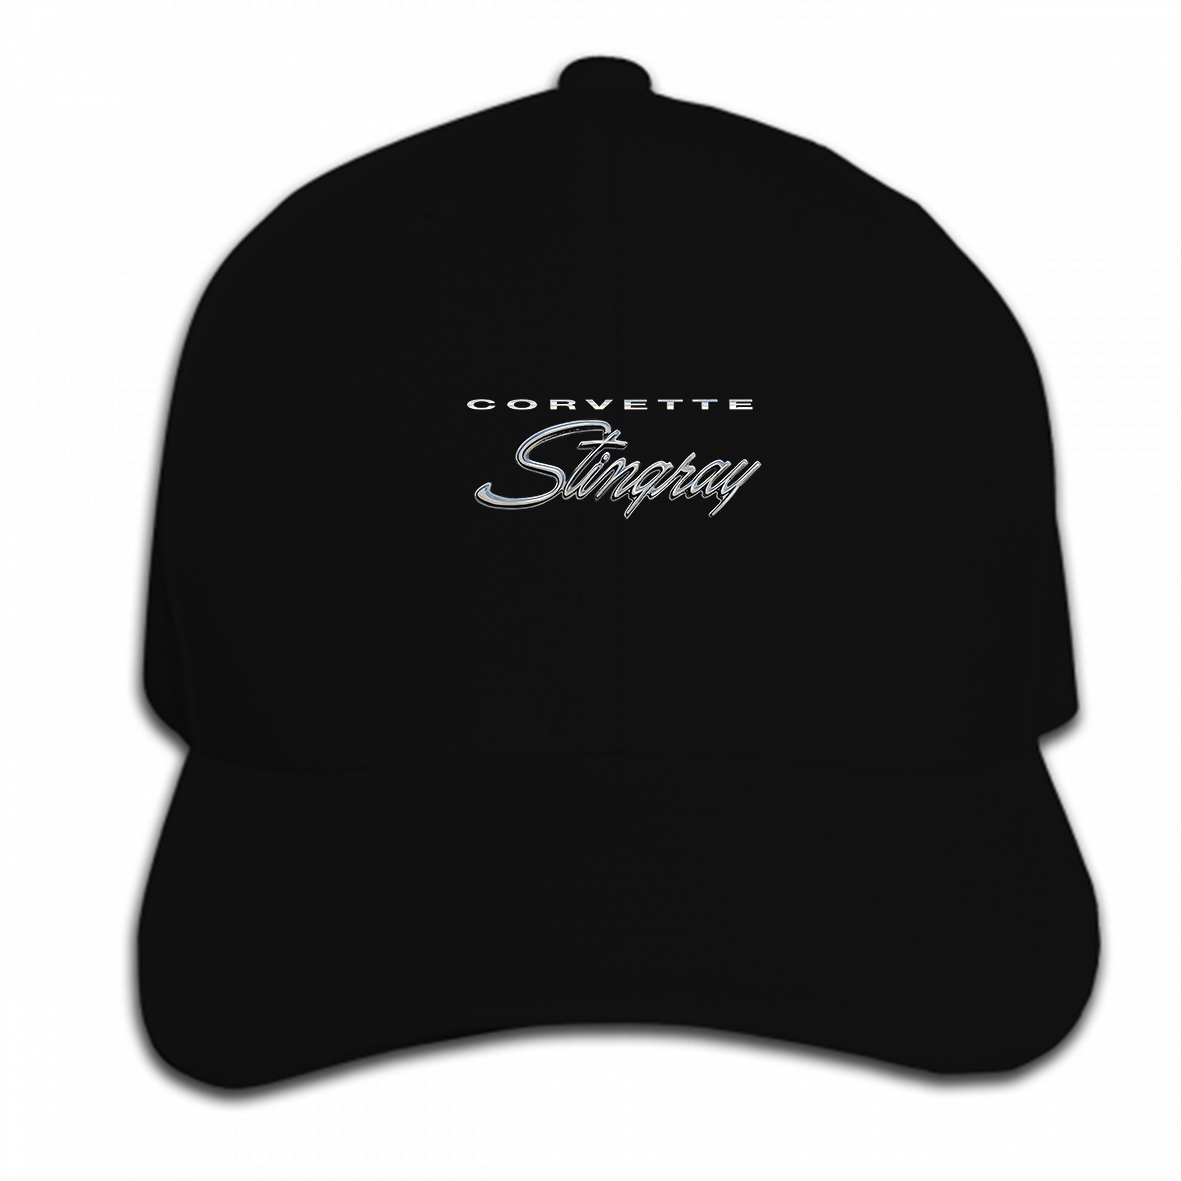 Print Custom Baseball Cap Chevy Corvette Stingray Mens ~ 1969 1972 ~ C3 3rd Gen ~ Gray Heather Hat Peaked Cap